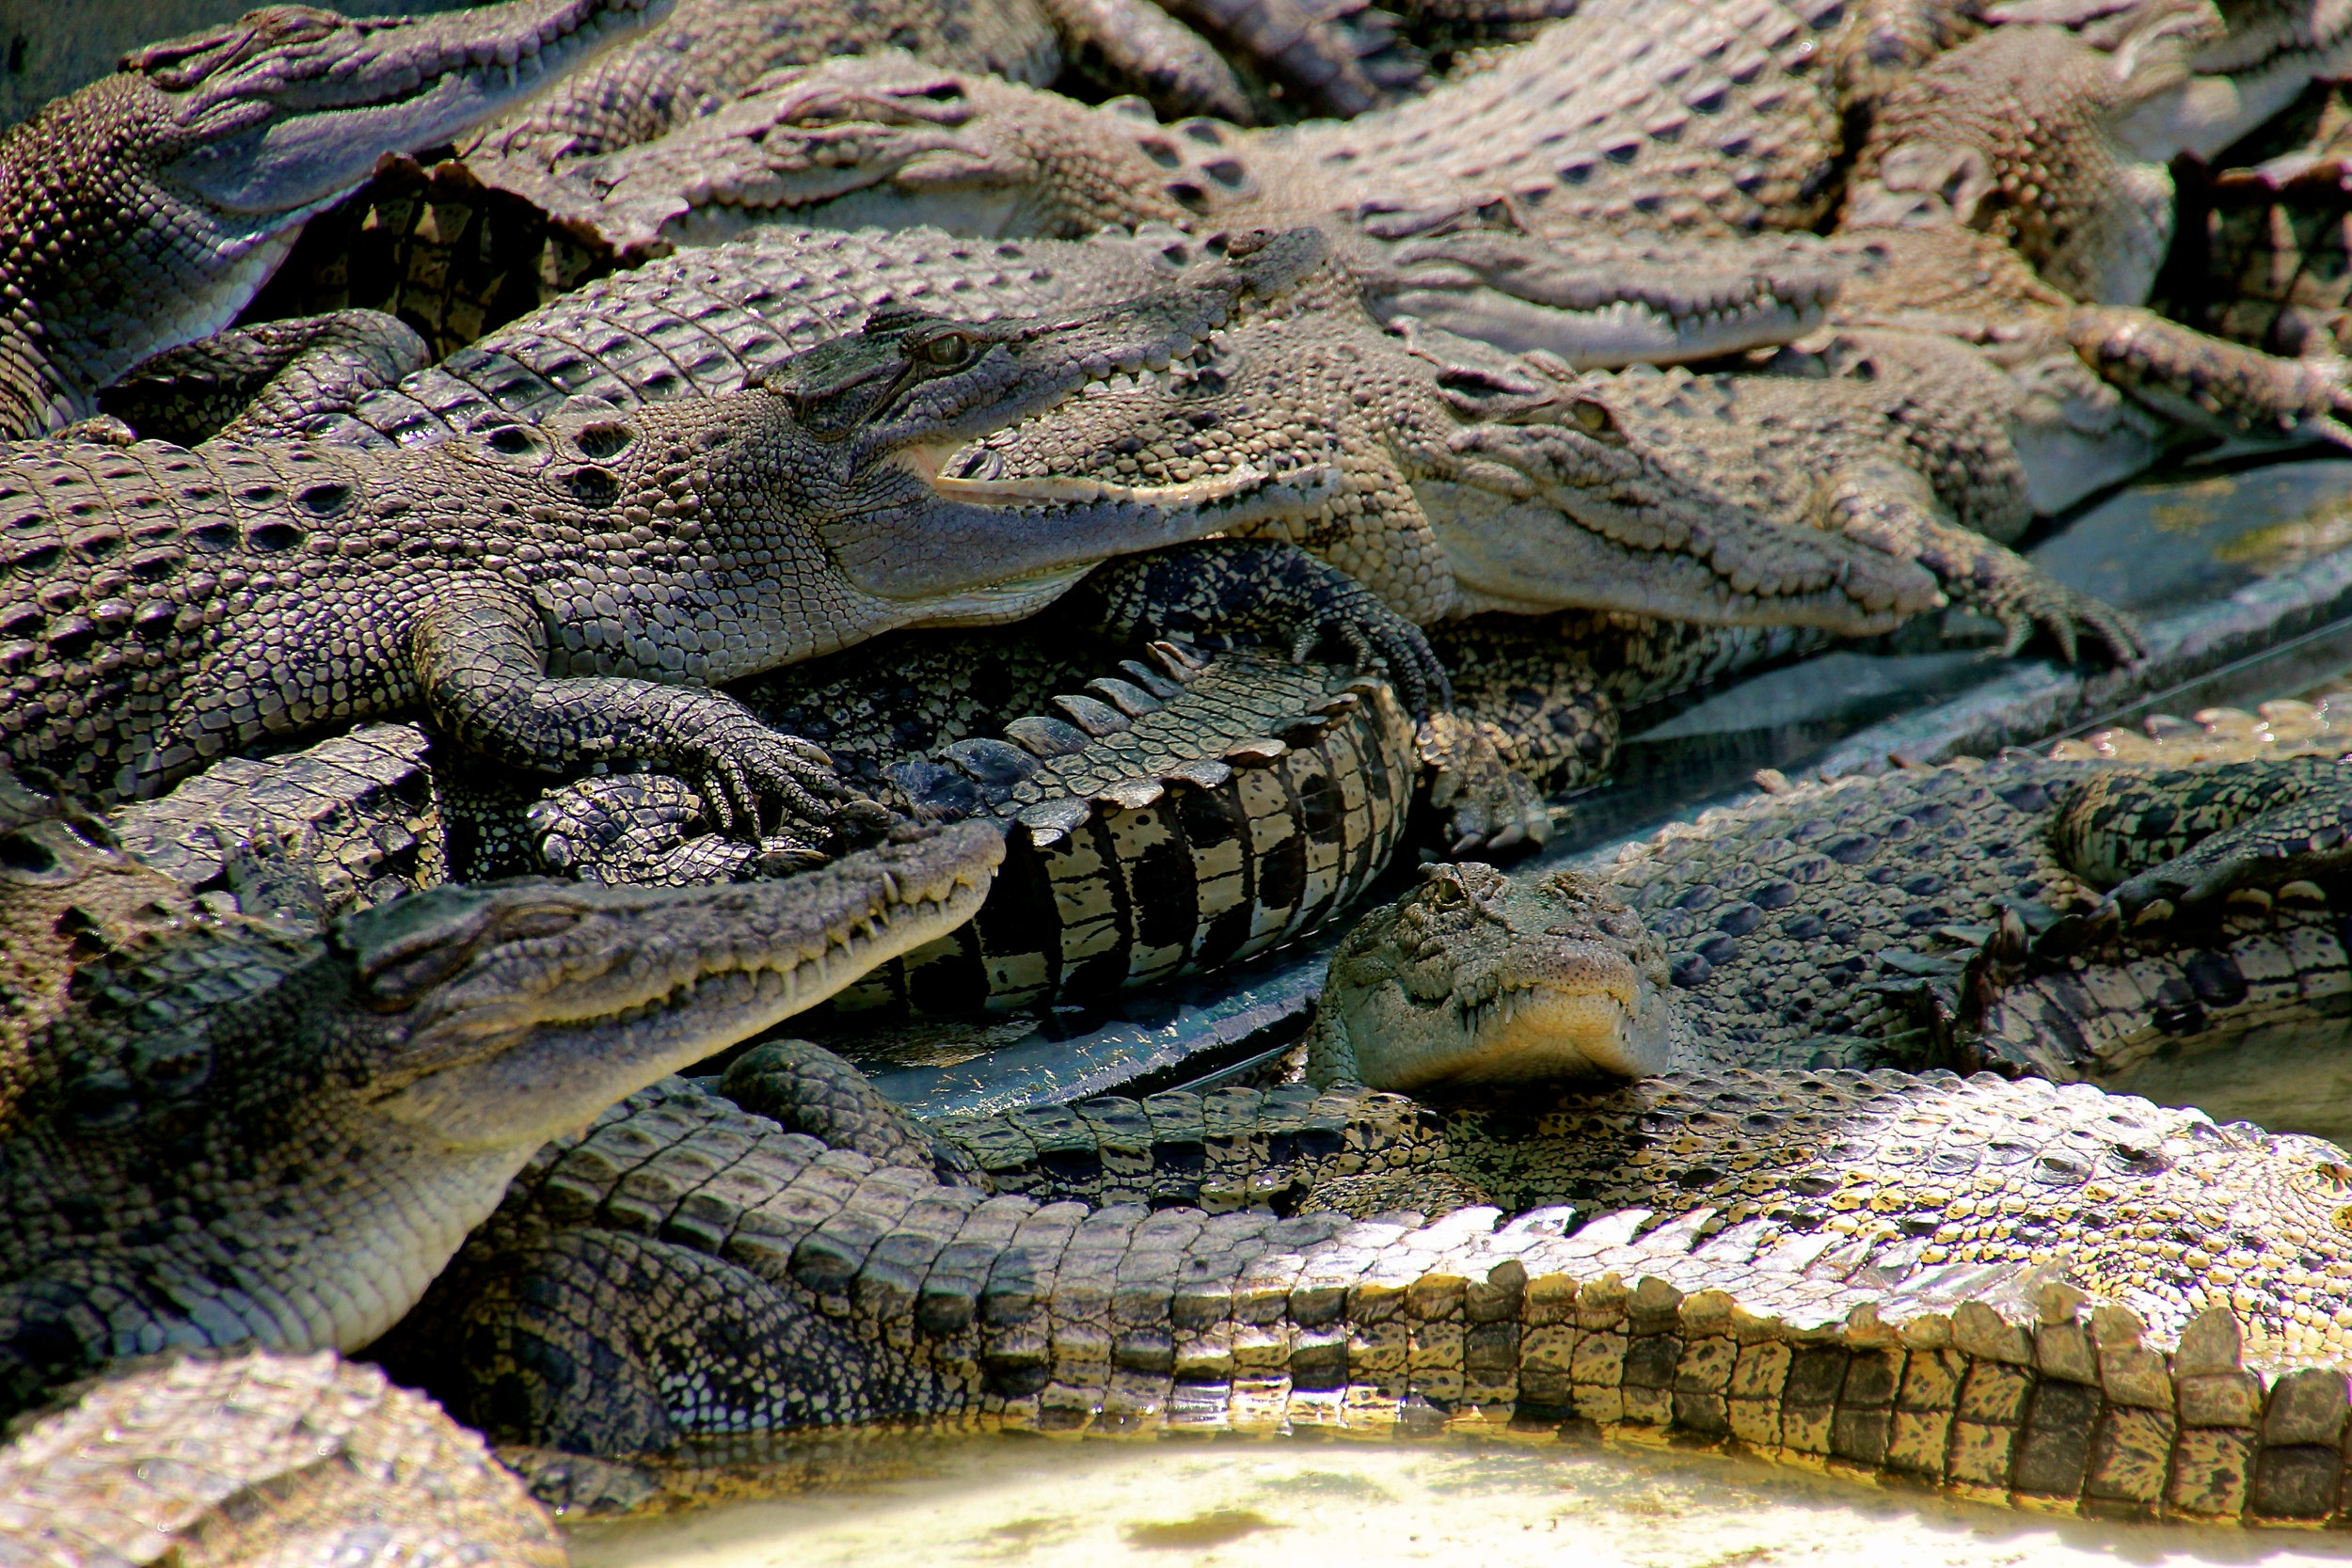 Crocodile farm near Port Douglas